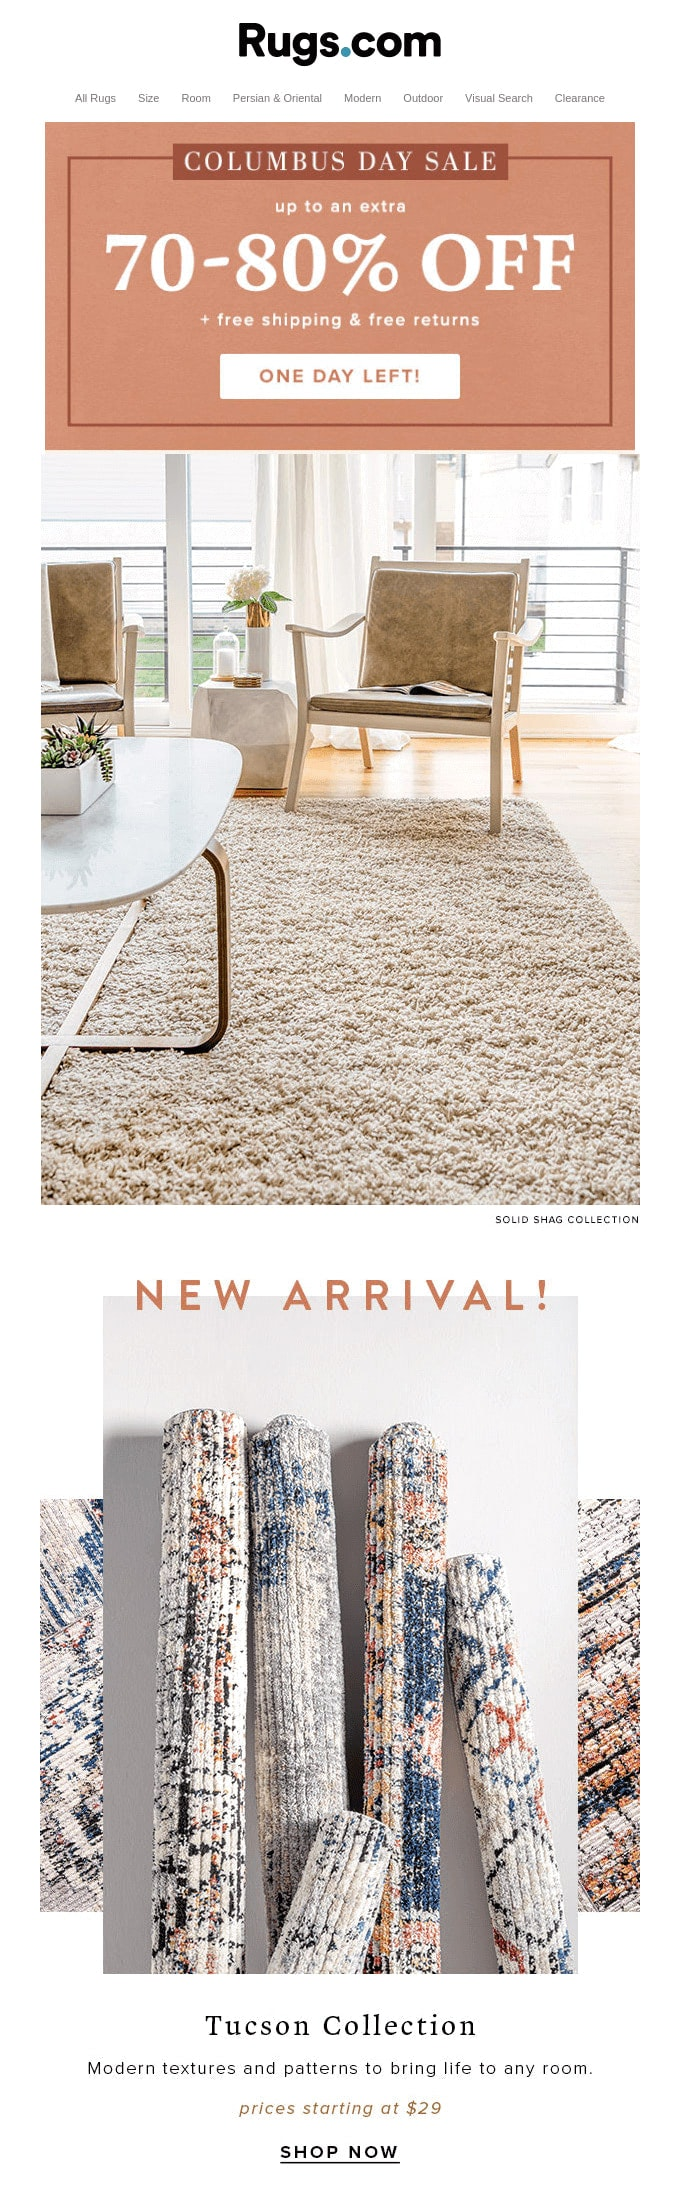 Email Design from Rugs